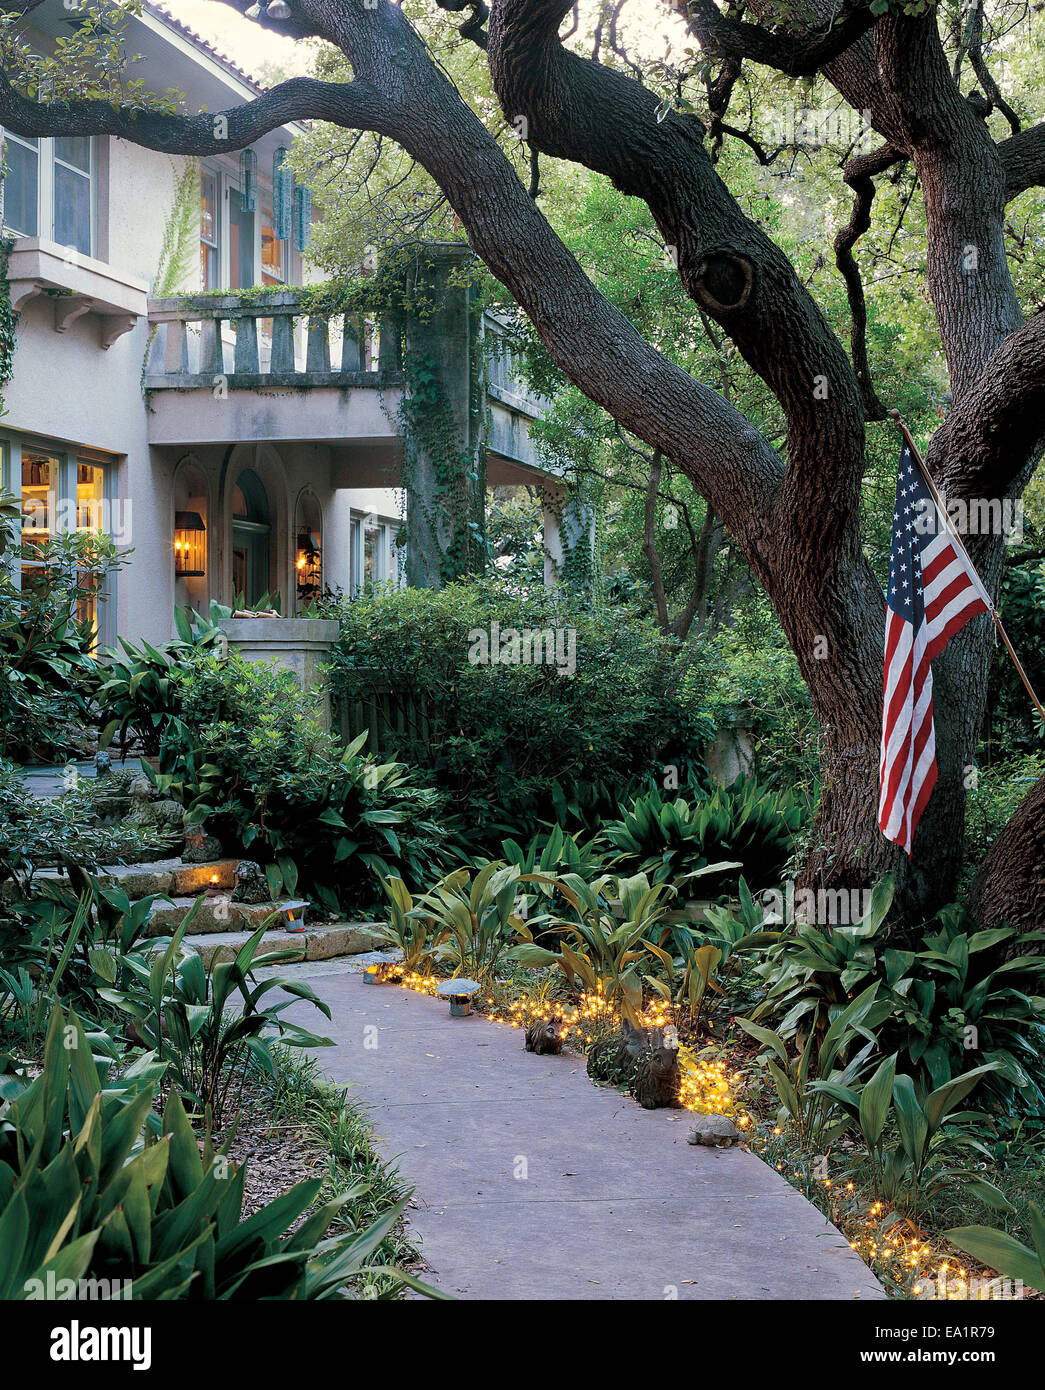 Lit Garden Path With American Flag Leads To Front Door Of Stone